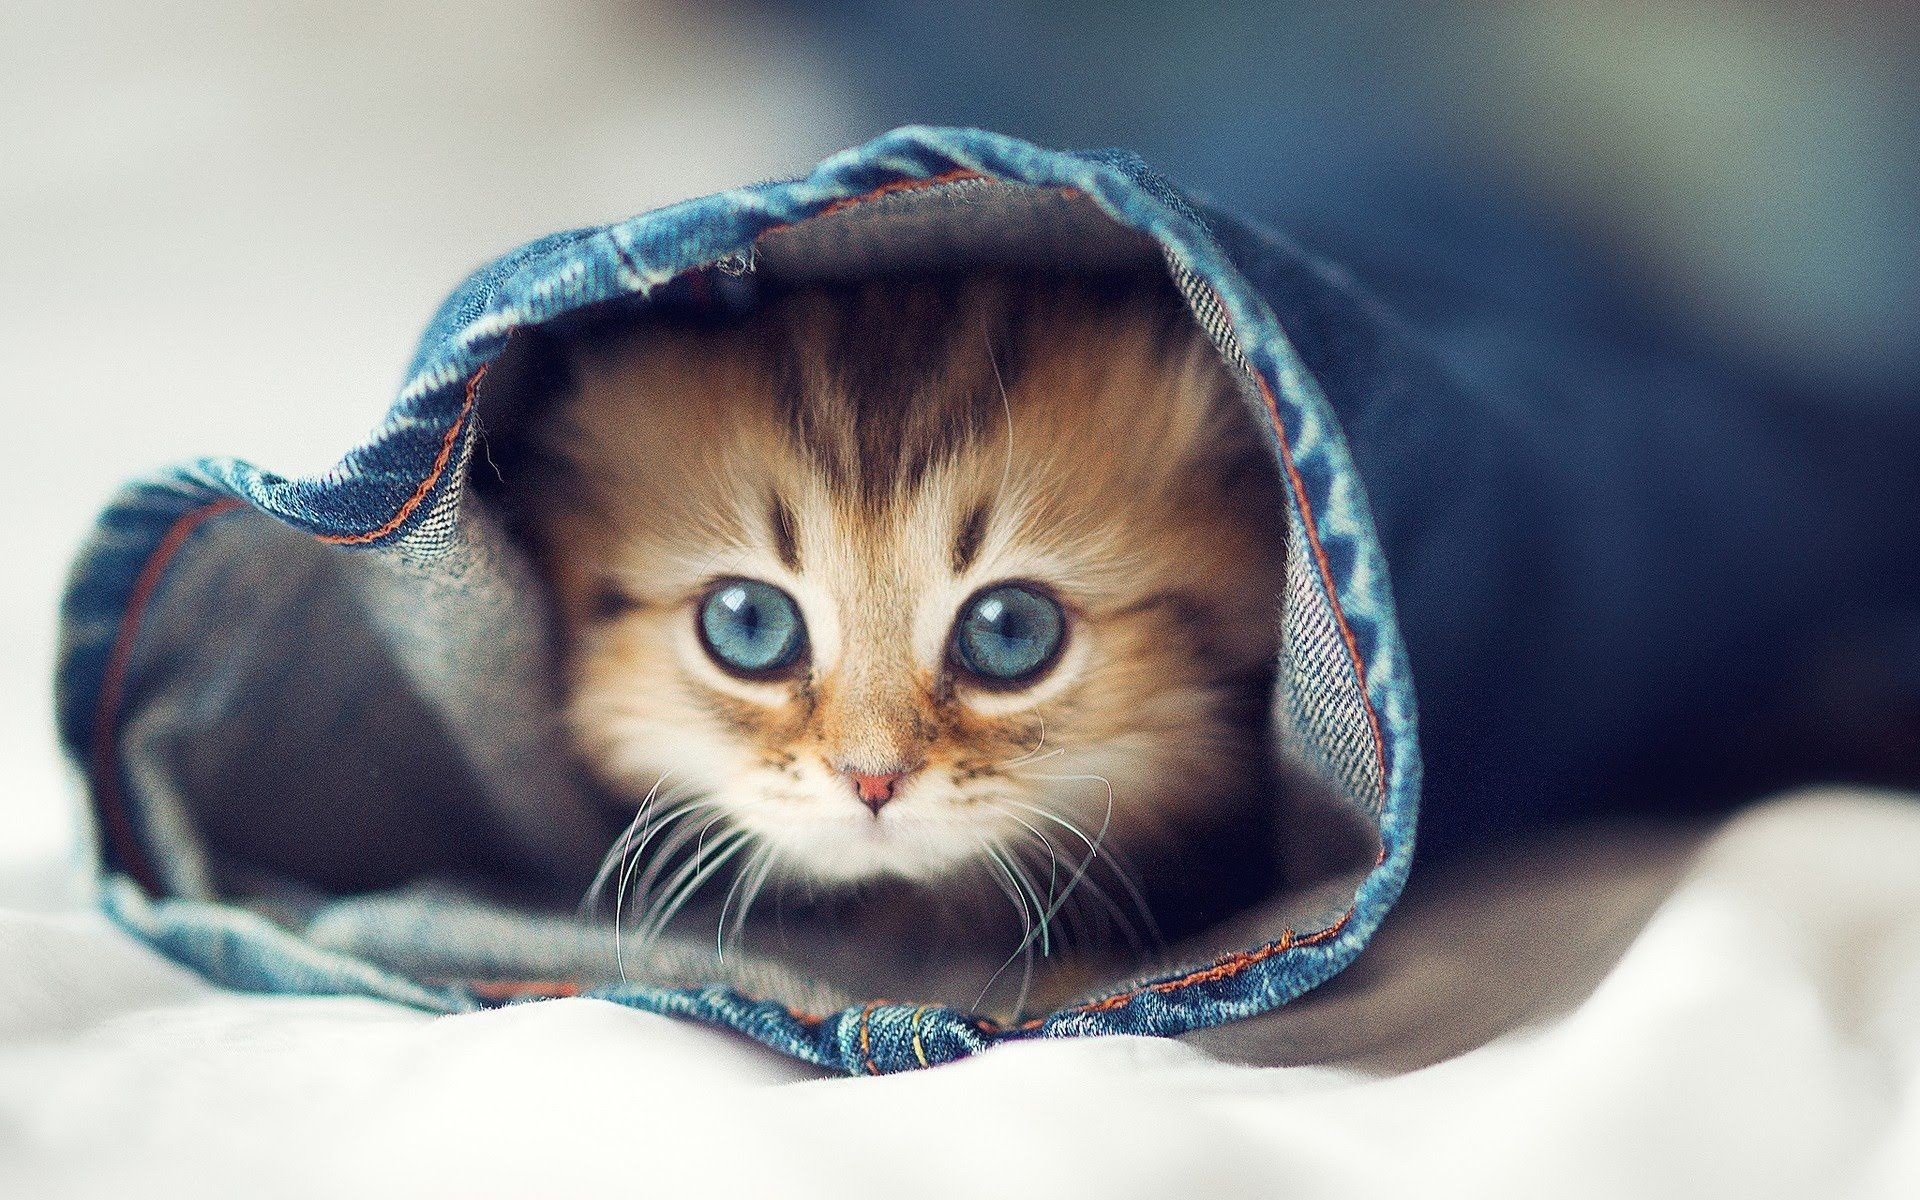 1920x1200 HQFX Cute Kitten Wallpapers, High Quality, Wallpapers and Pictures –  download free